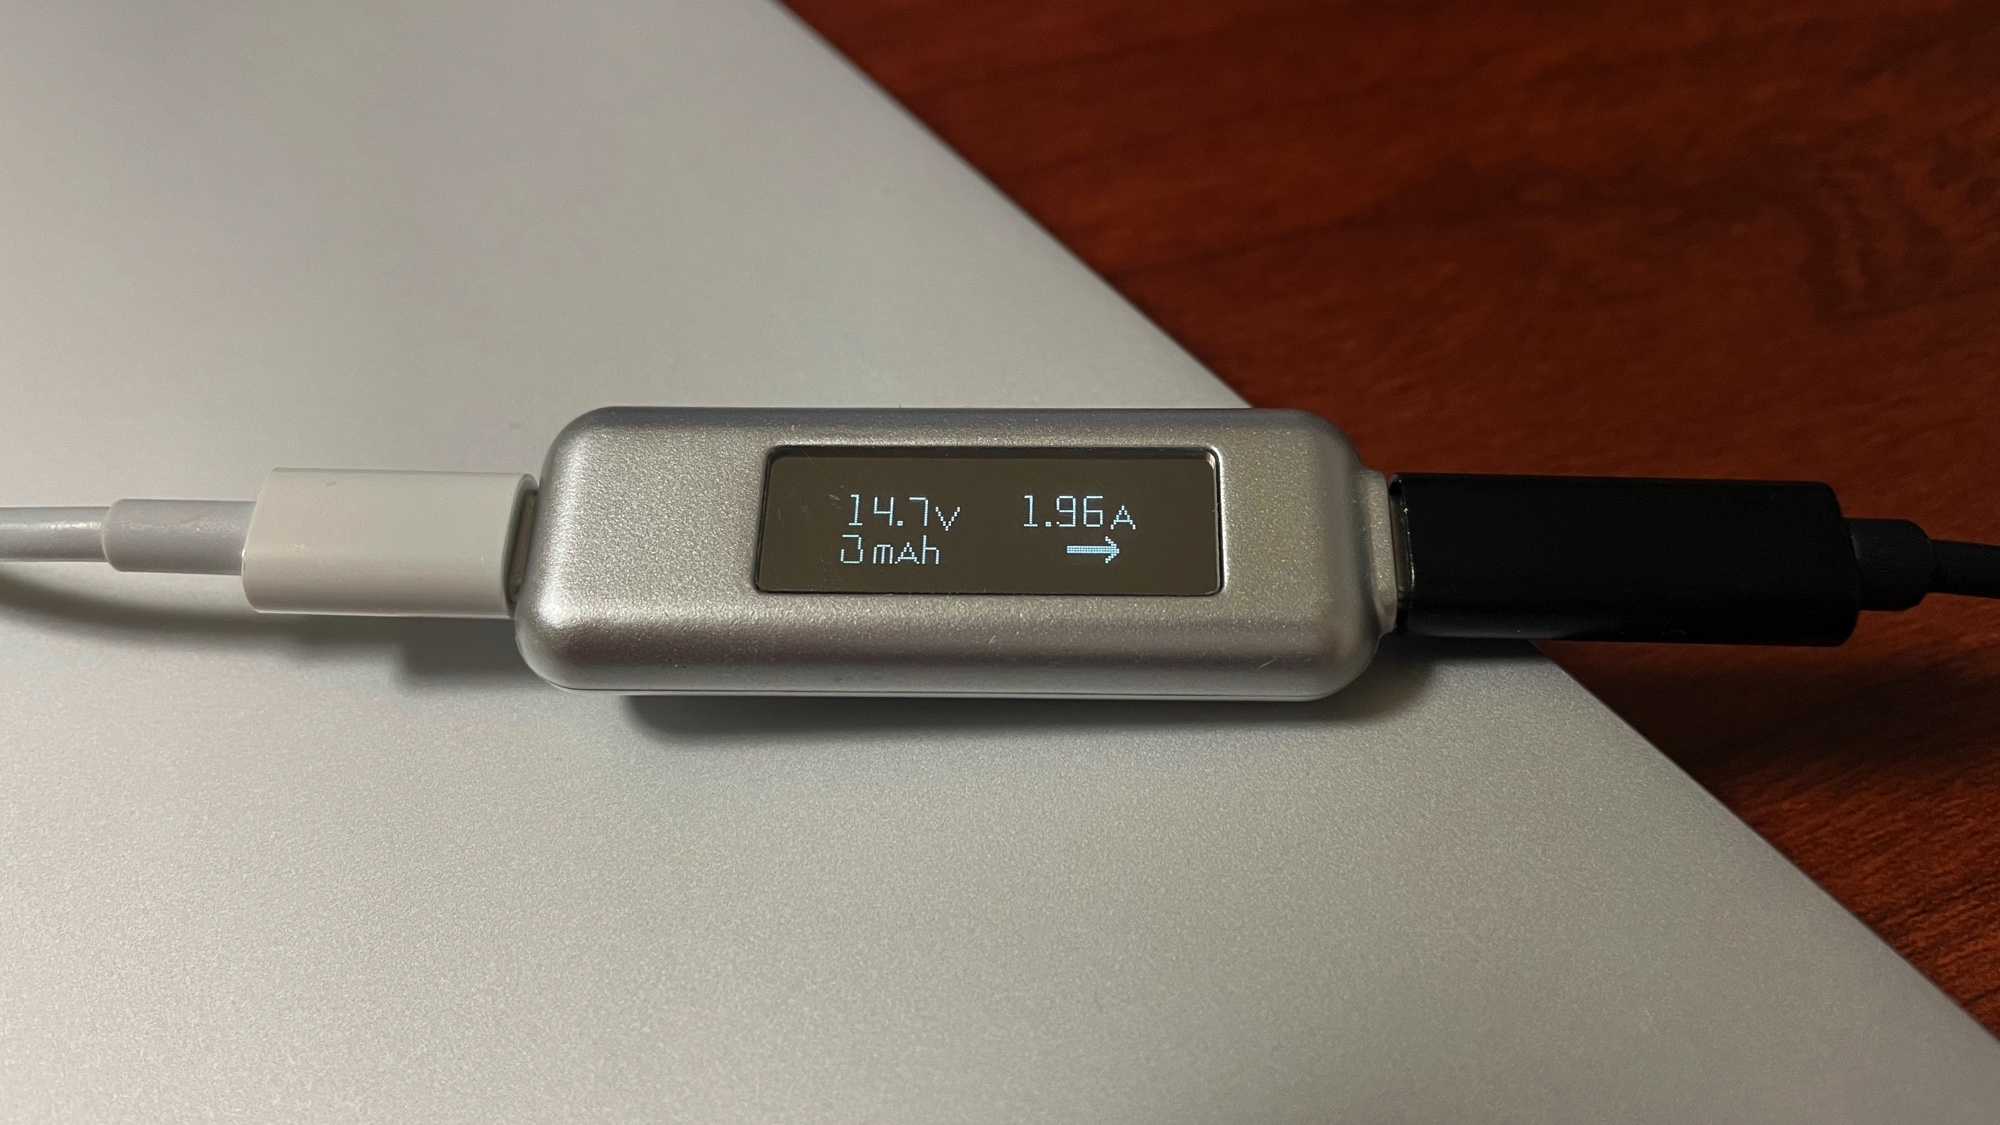 BOLWEO Surface Pro USB-C 充電ケーブル